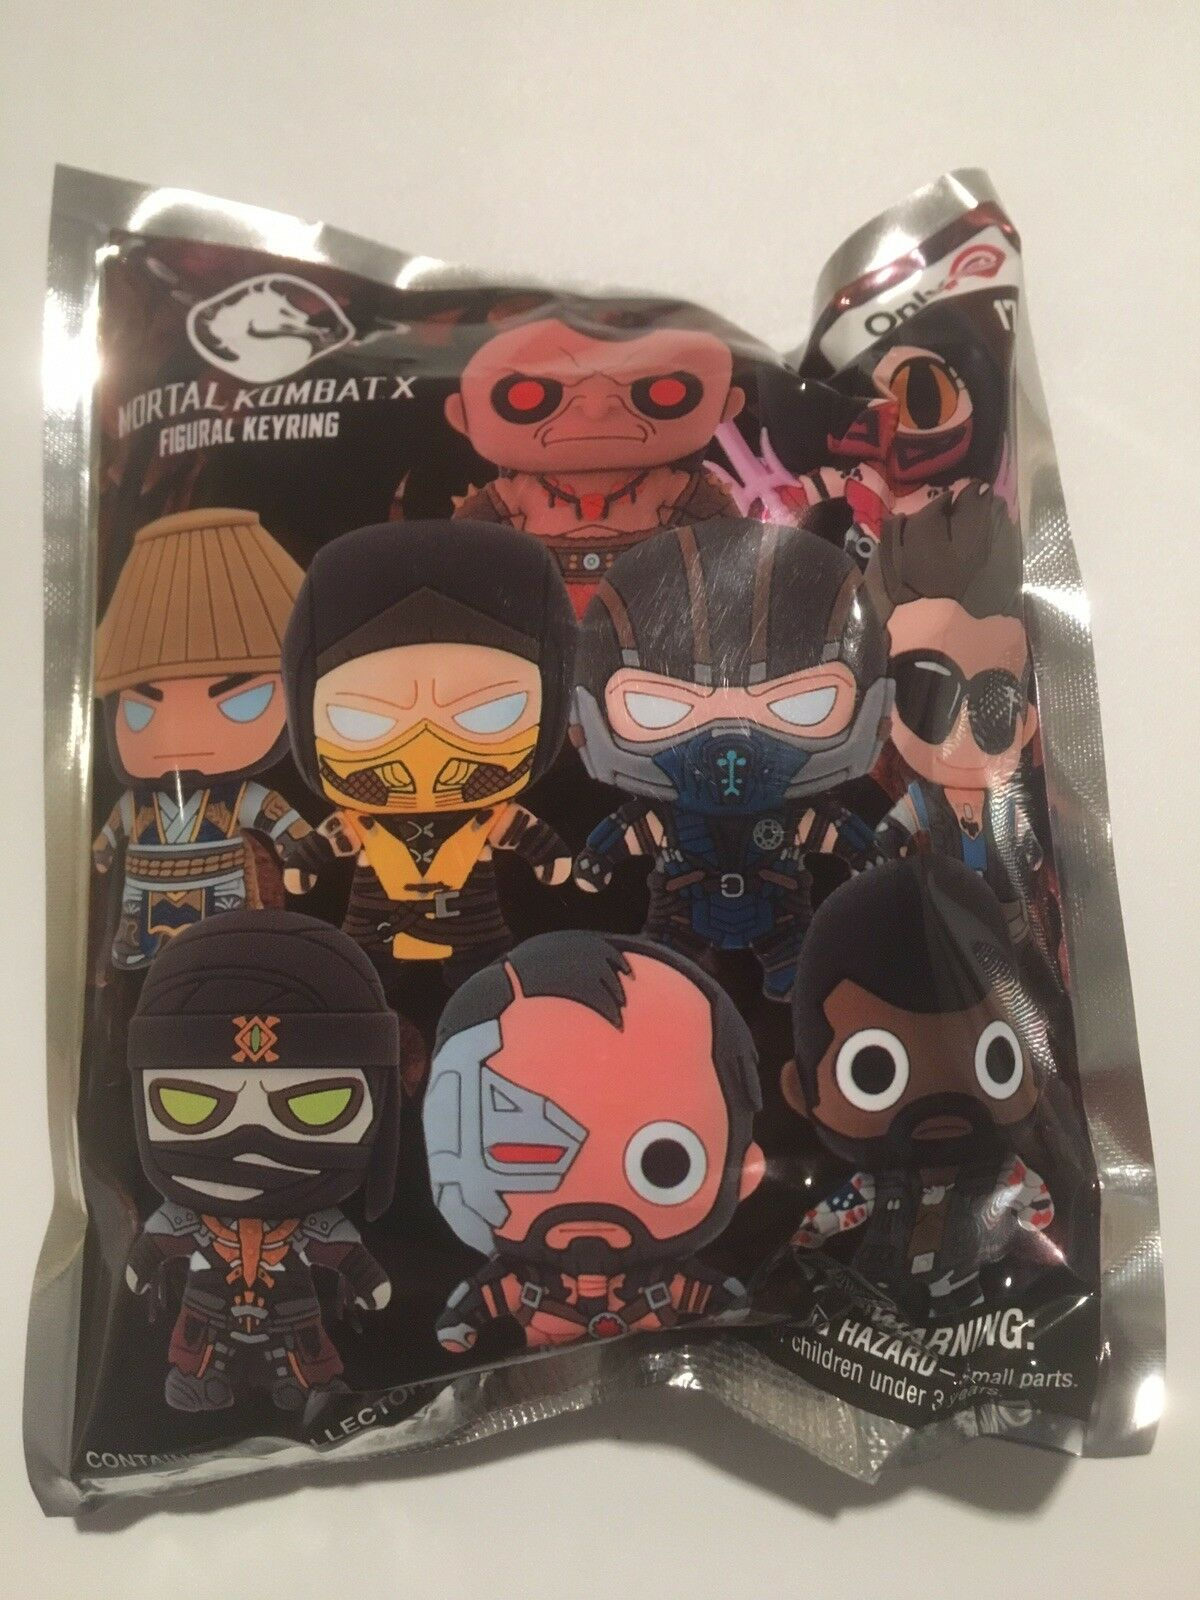 (10) Mortal Kombat X 3D Figural Figural Figural Keyring Action Figures Lot Unopened NEW Gamestop d3f175